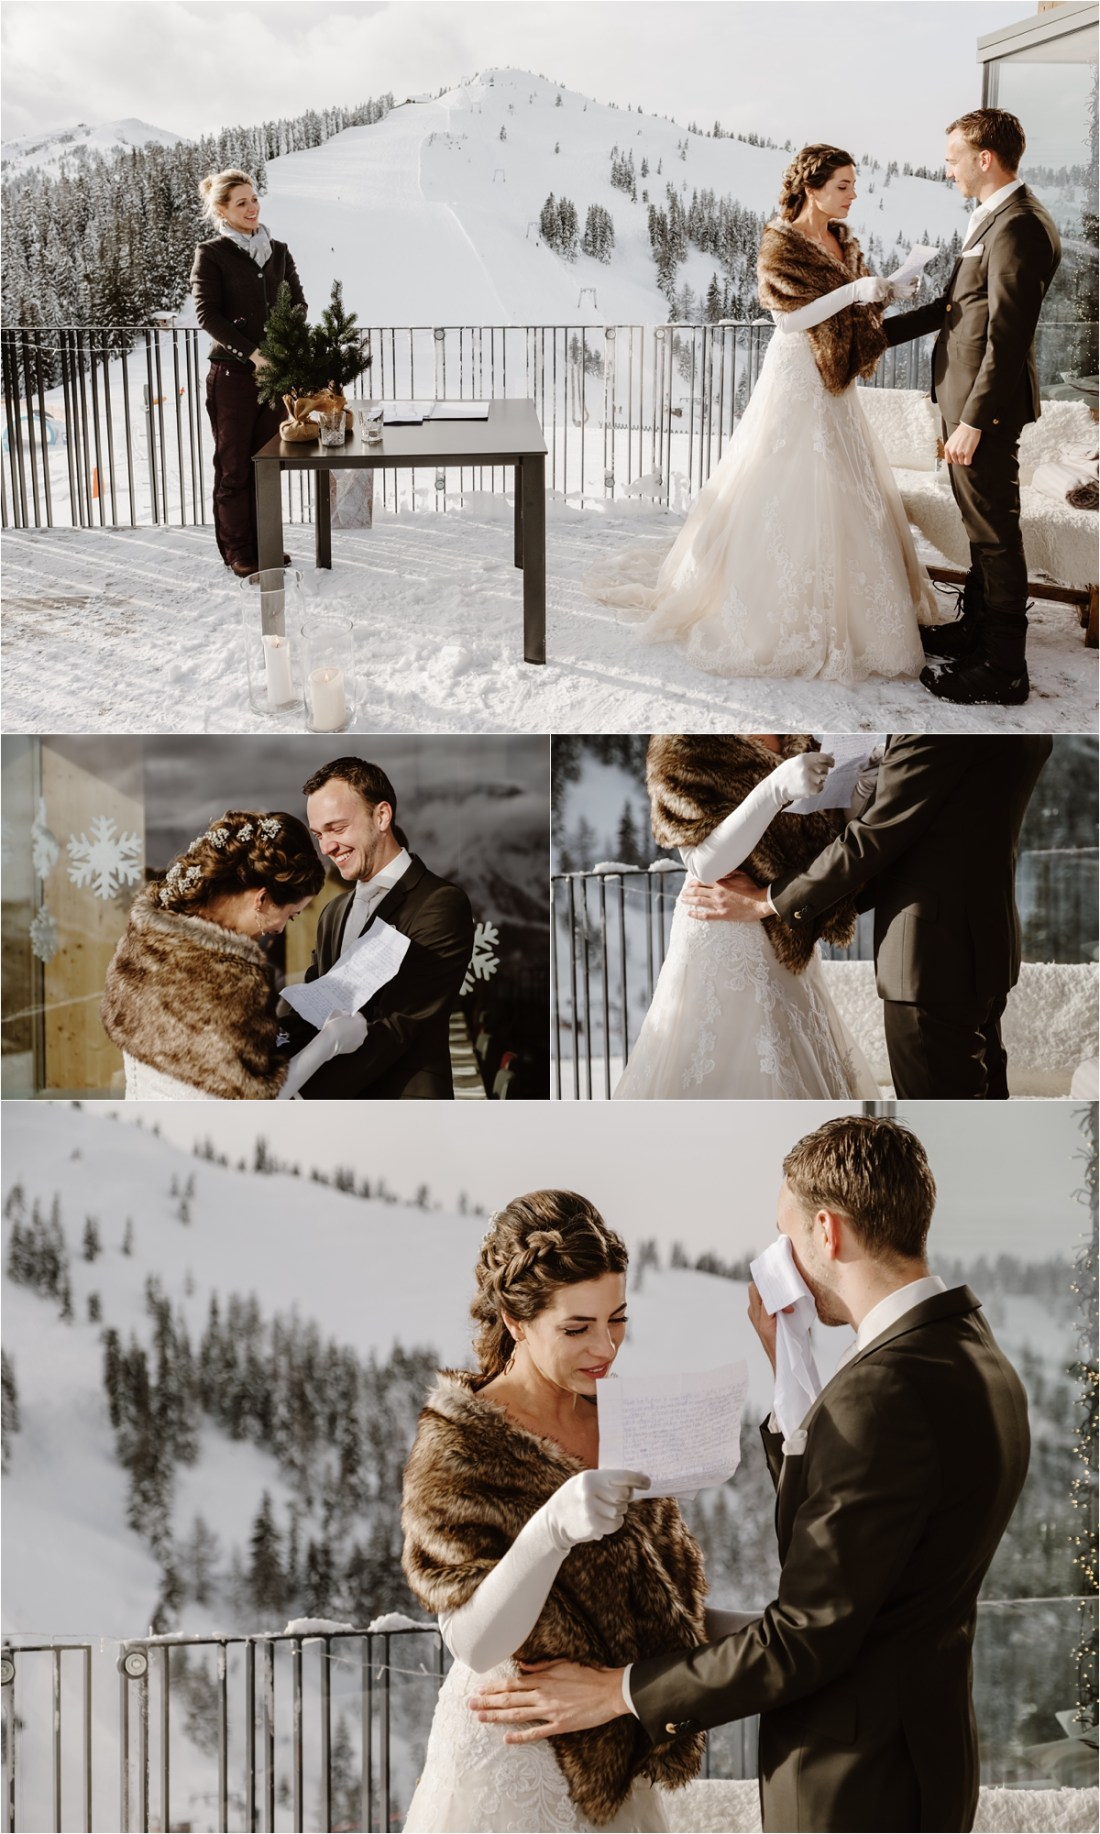 The bride and groom exchange hand-written vows at their outdoor ceremony on the terrace of the Schmiedhof Alm in Zell Am See Austria by Wild Connections Photography